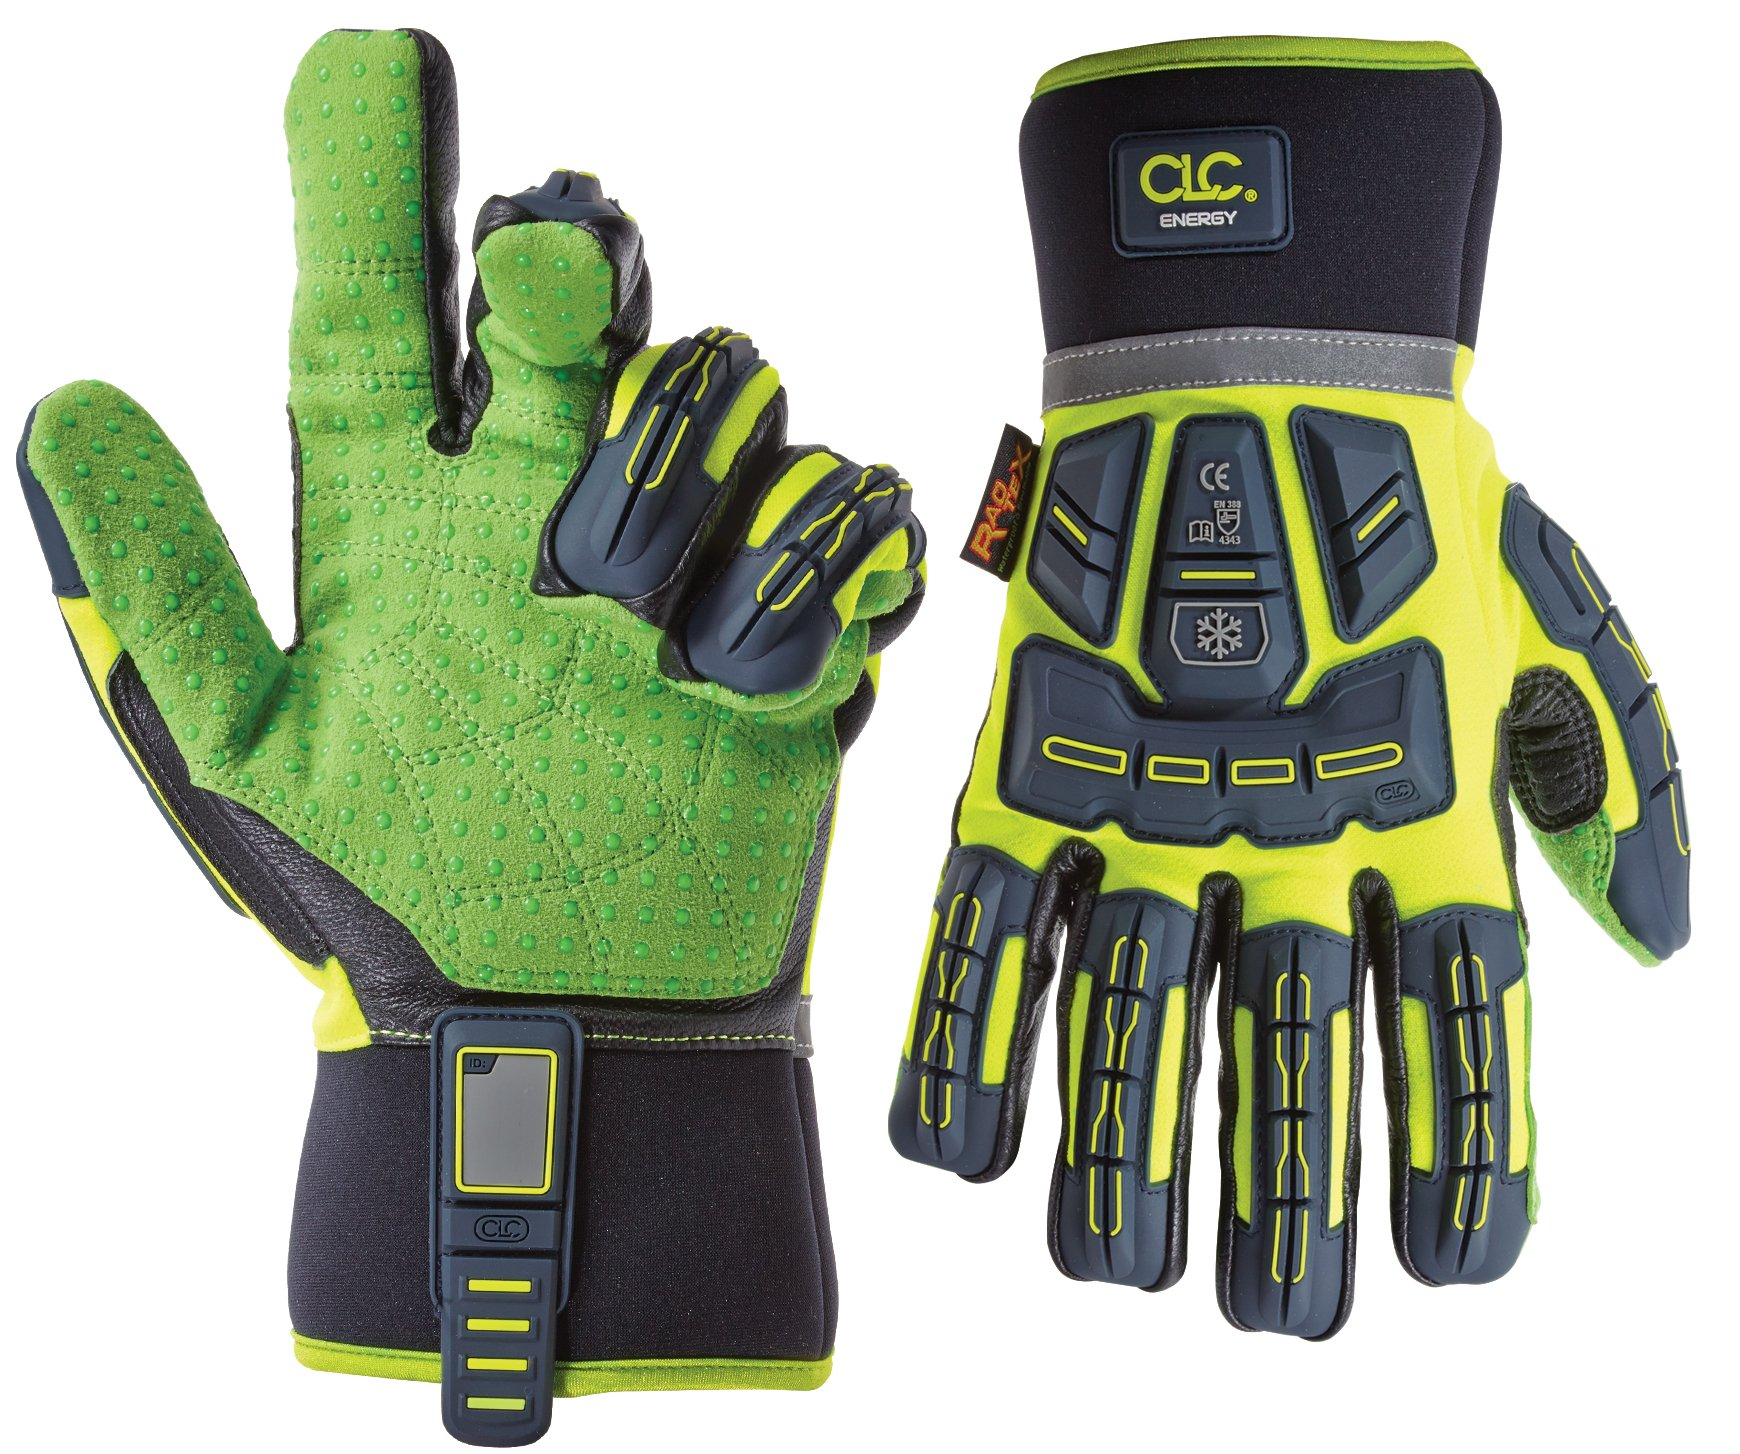 CLC Custom Leathercraft 610X CLC Custom Leathercraft Winter Energy Oil and Gas Gloves, X-Large